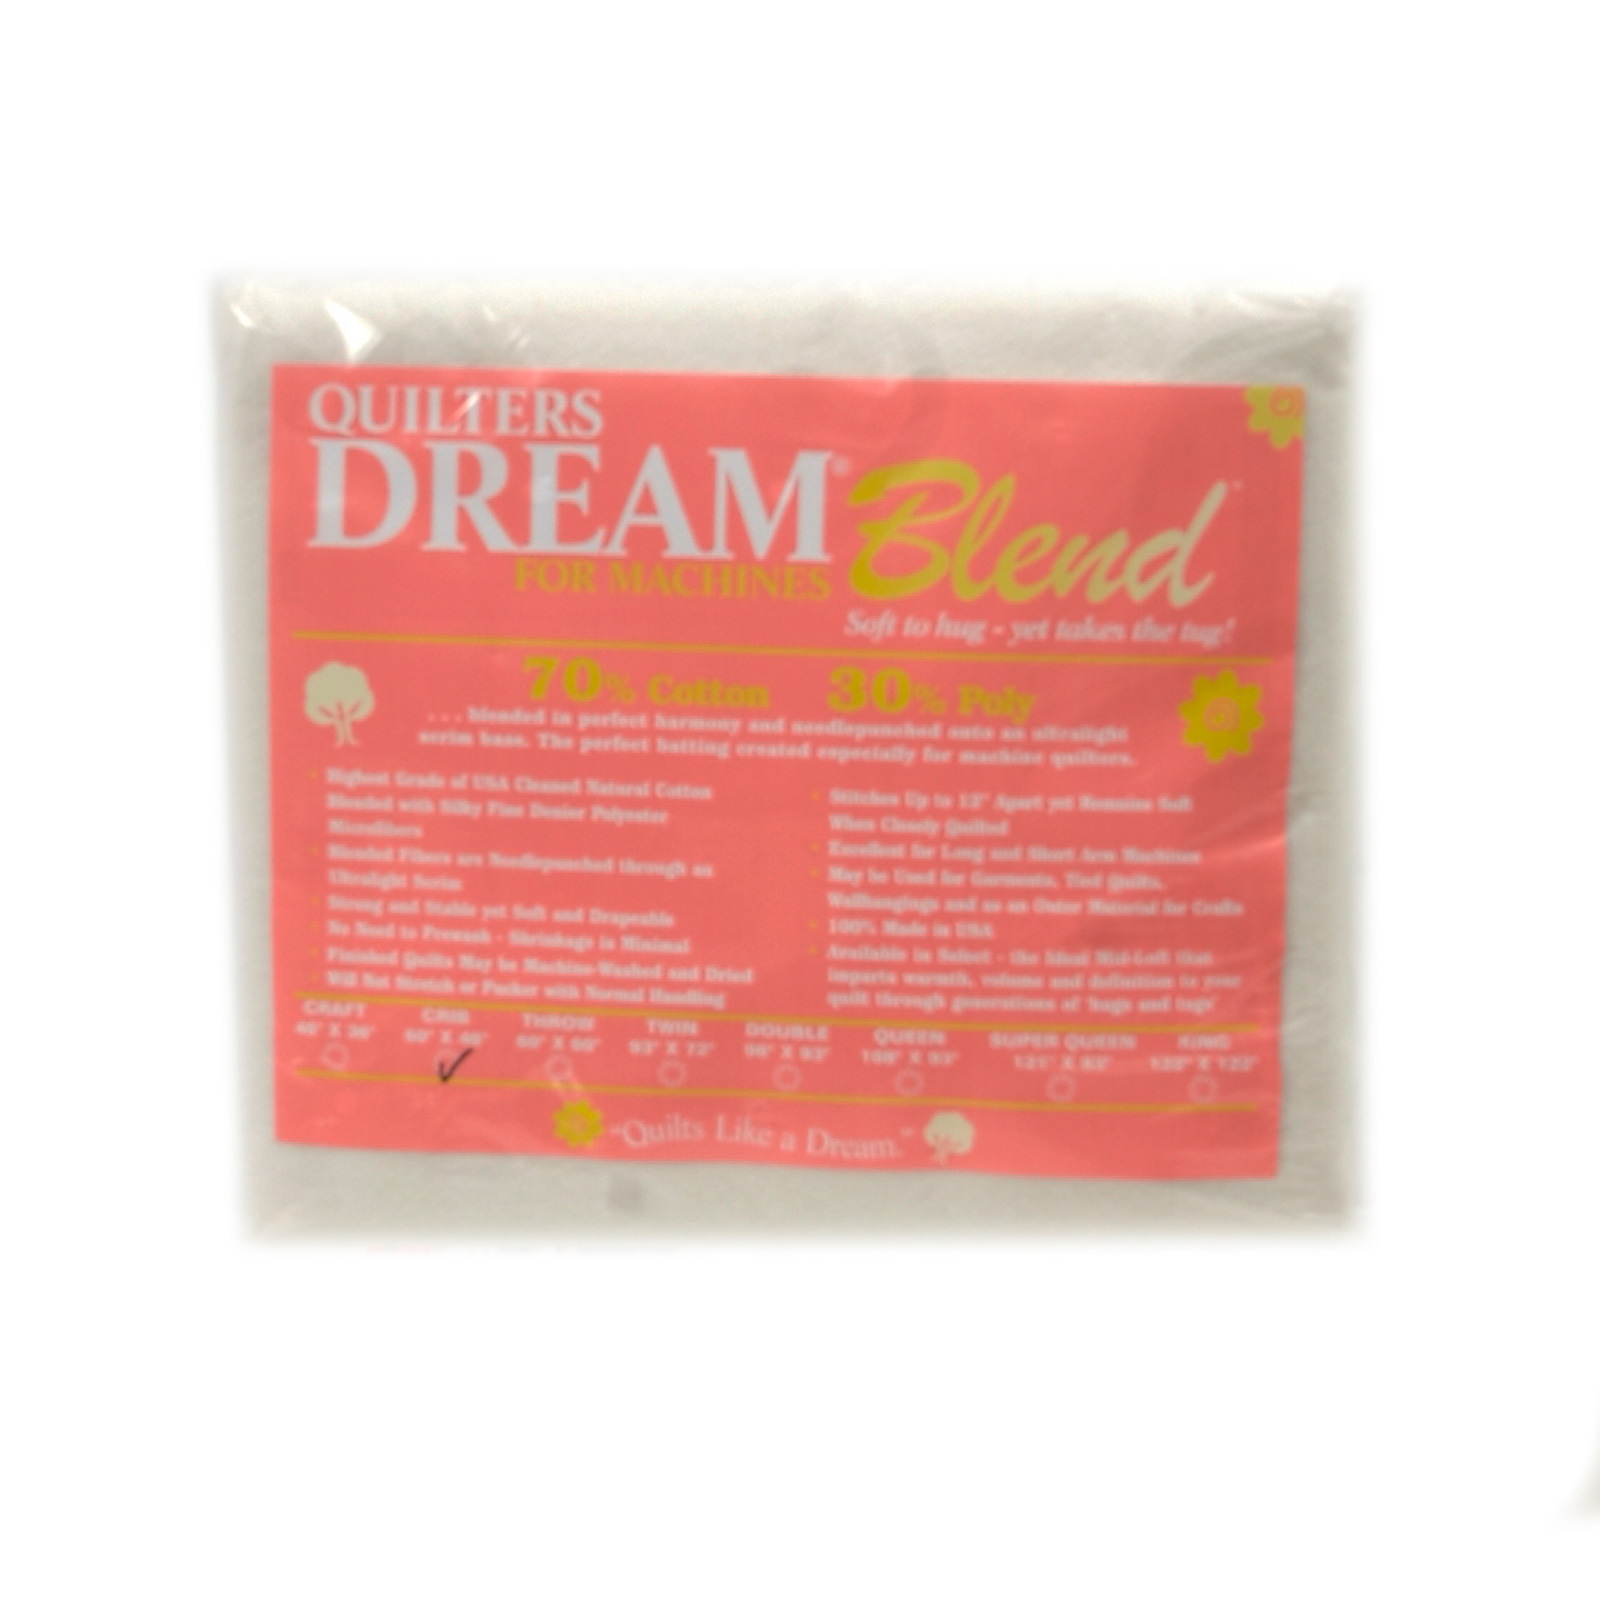 Quilter's Dream Blend (60'' x 46'') Crib by Quilter's Dream in USA